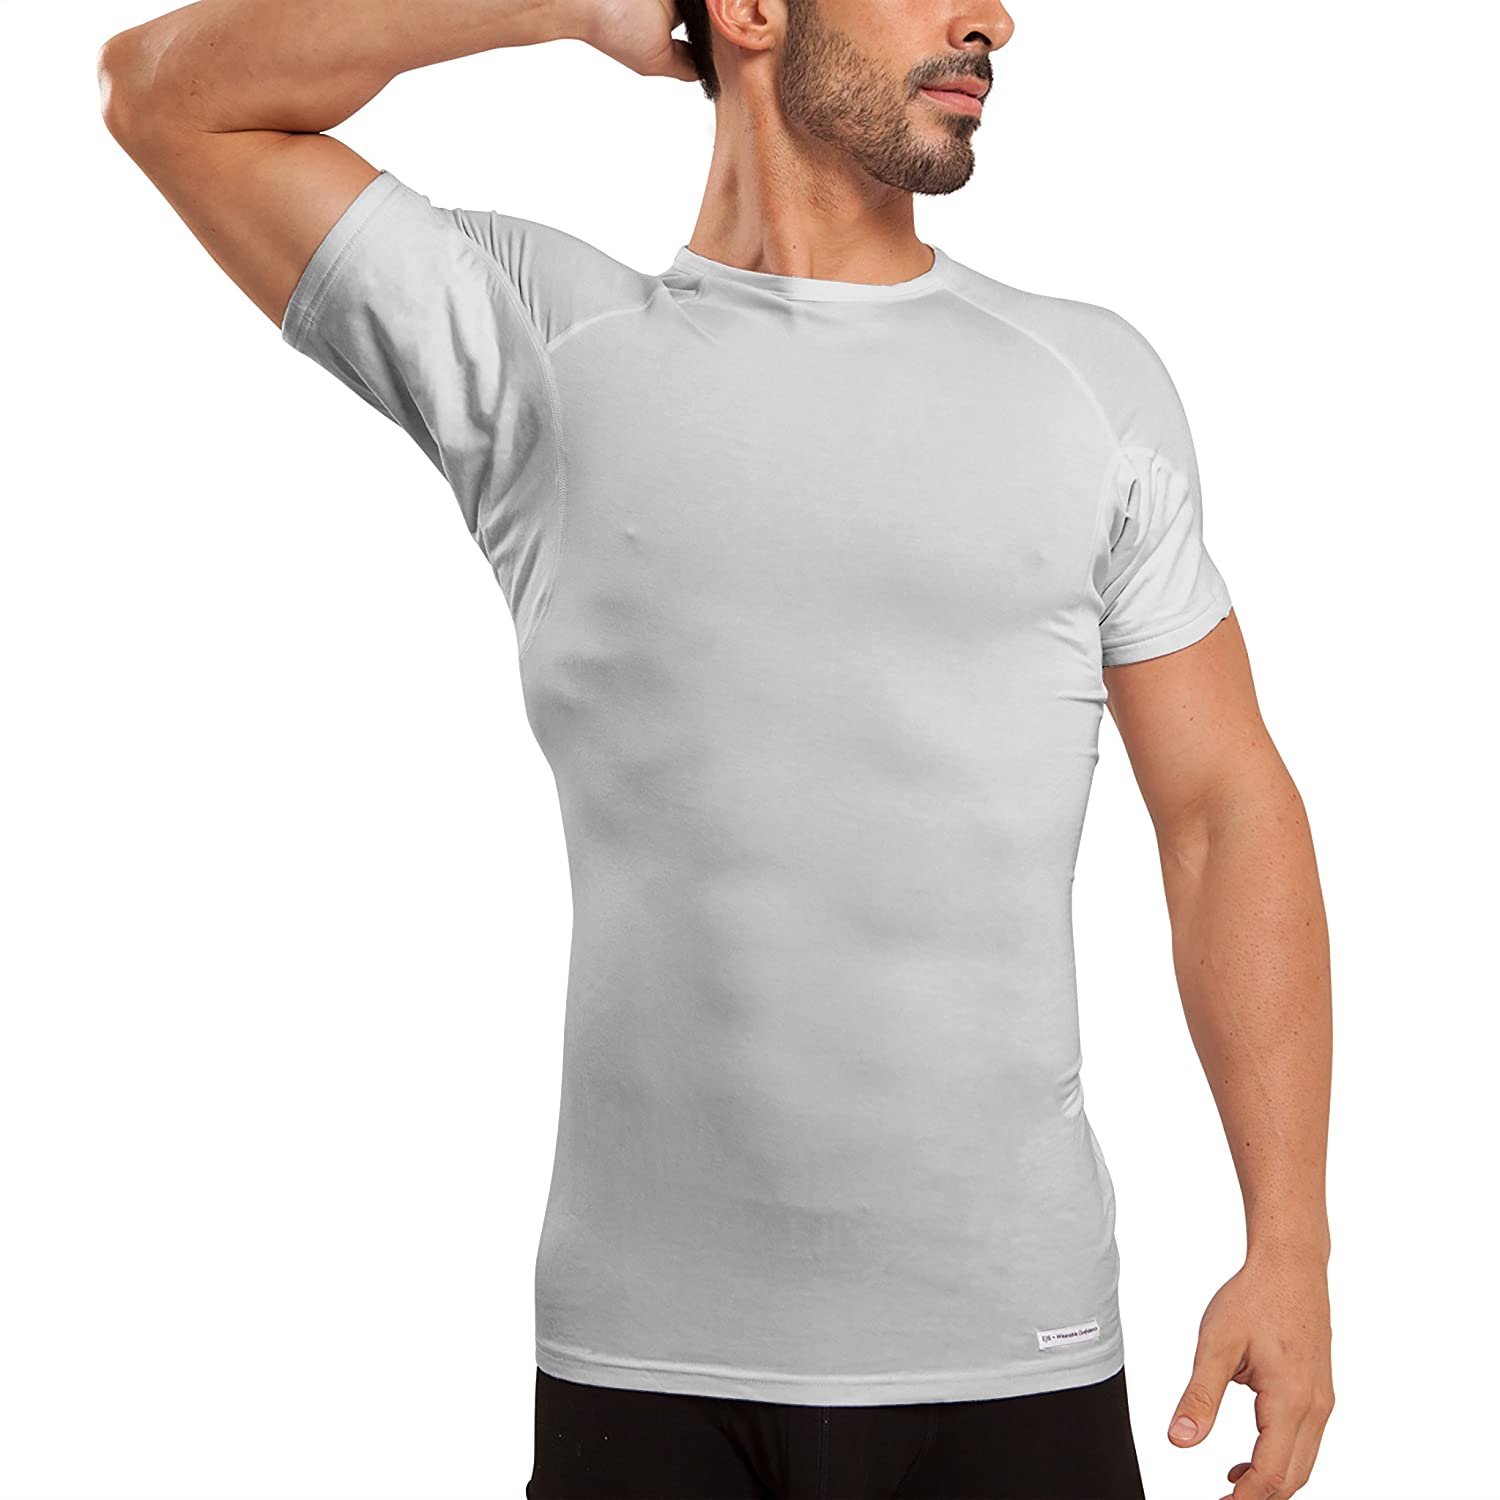 Ejis Sweat Proof Undershirts with Sweat Pads and Silver, Micro Modal Crew Neck